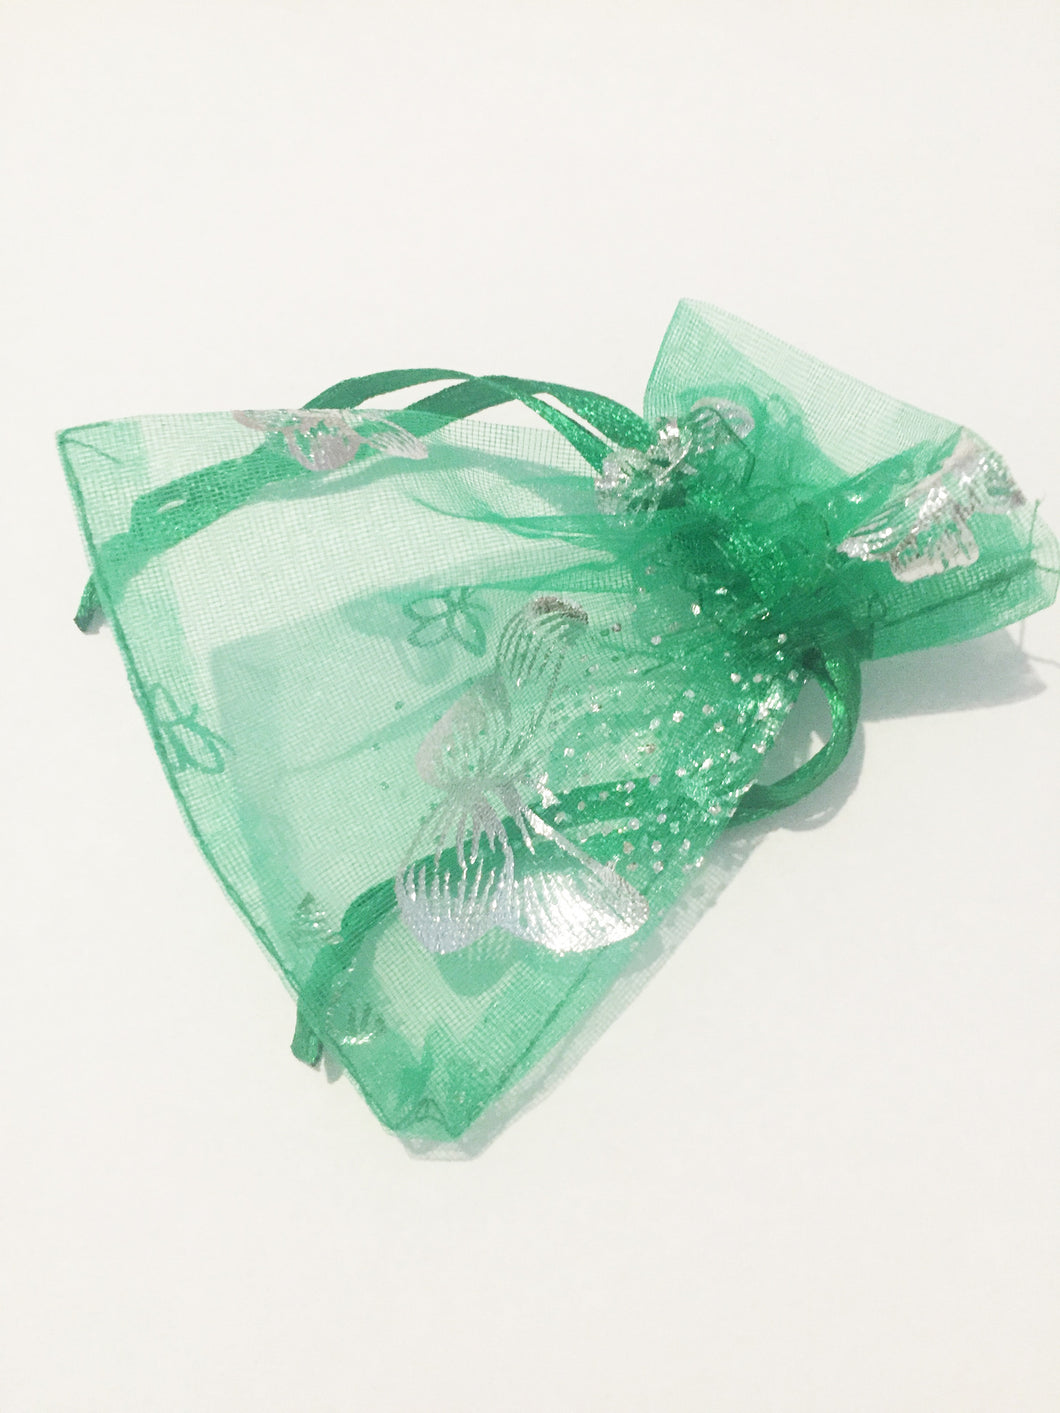 Green Butterfly Organza Jewellery Pouch/ Gift Bag